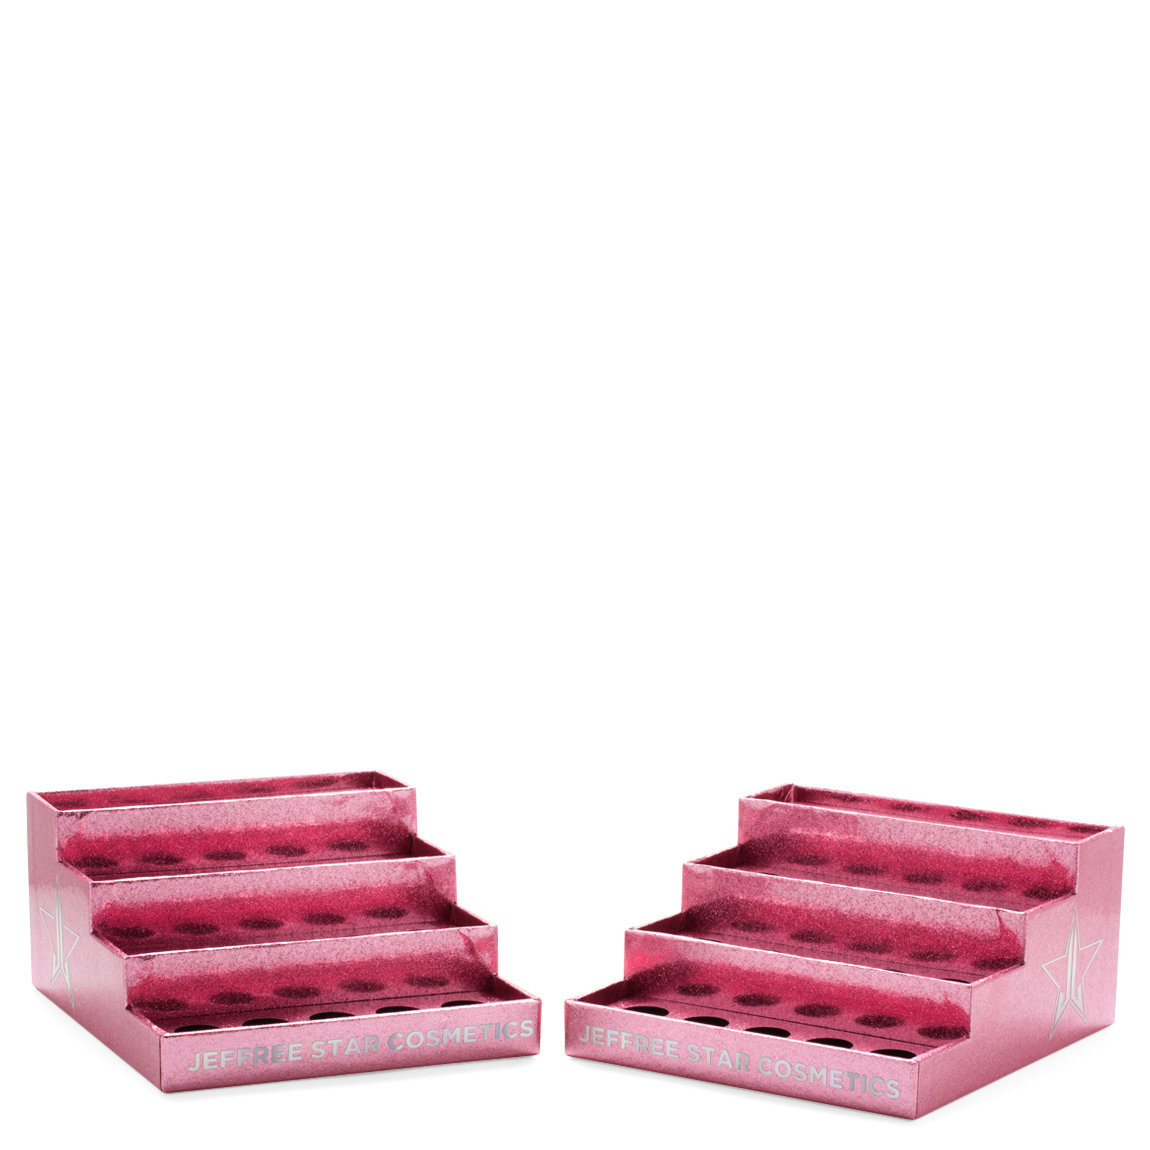 Jeffree Star Cosmetics Pink Glitter Makeup Display (2-Pack) product smear.